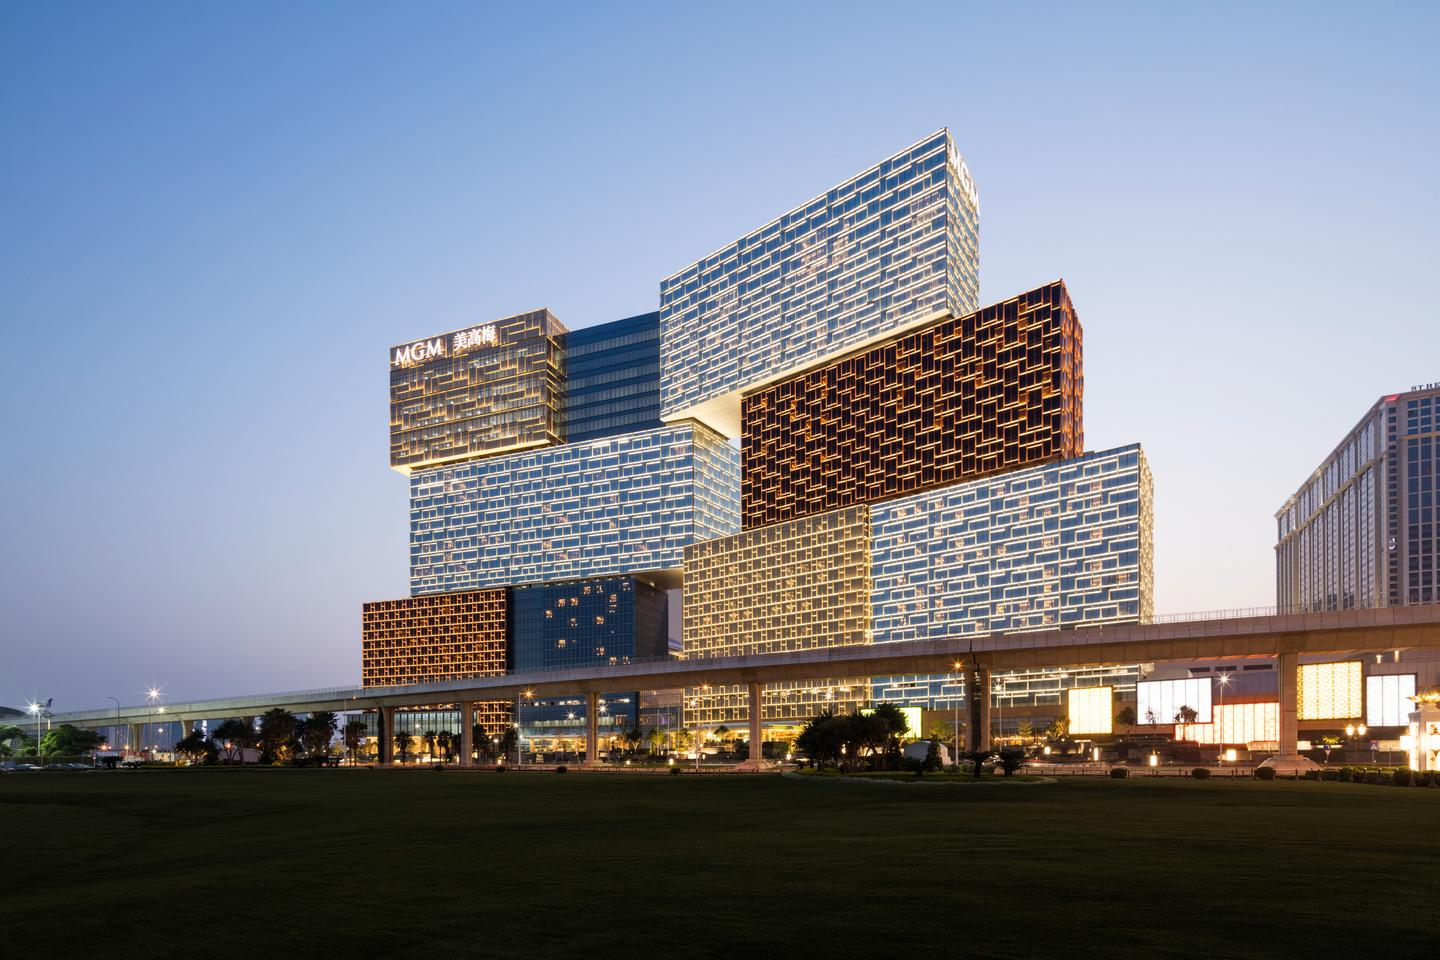 The MGM Cotai, by Kohn Pedersen Fox Associates, has been declared the world's best new skyscraper by information specialist Emporis during its annual Skyscraper Award